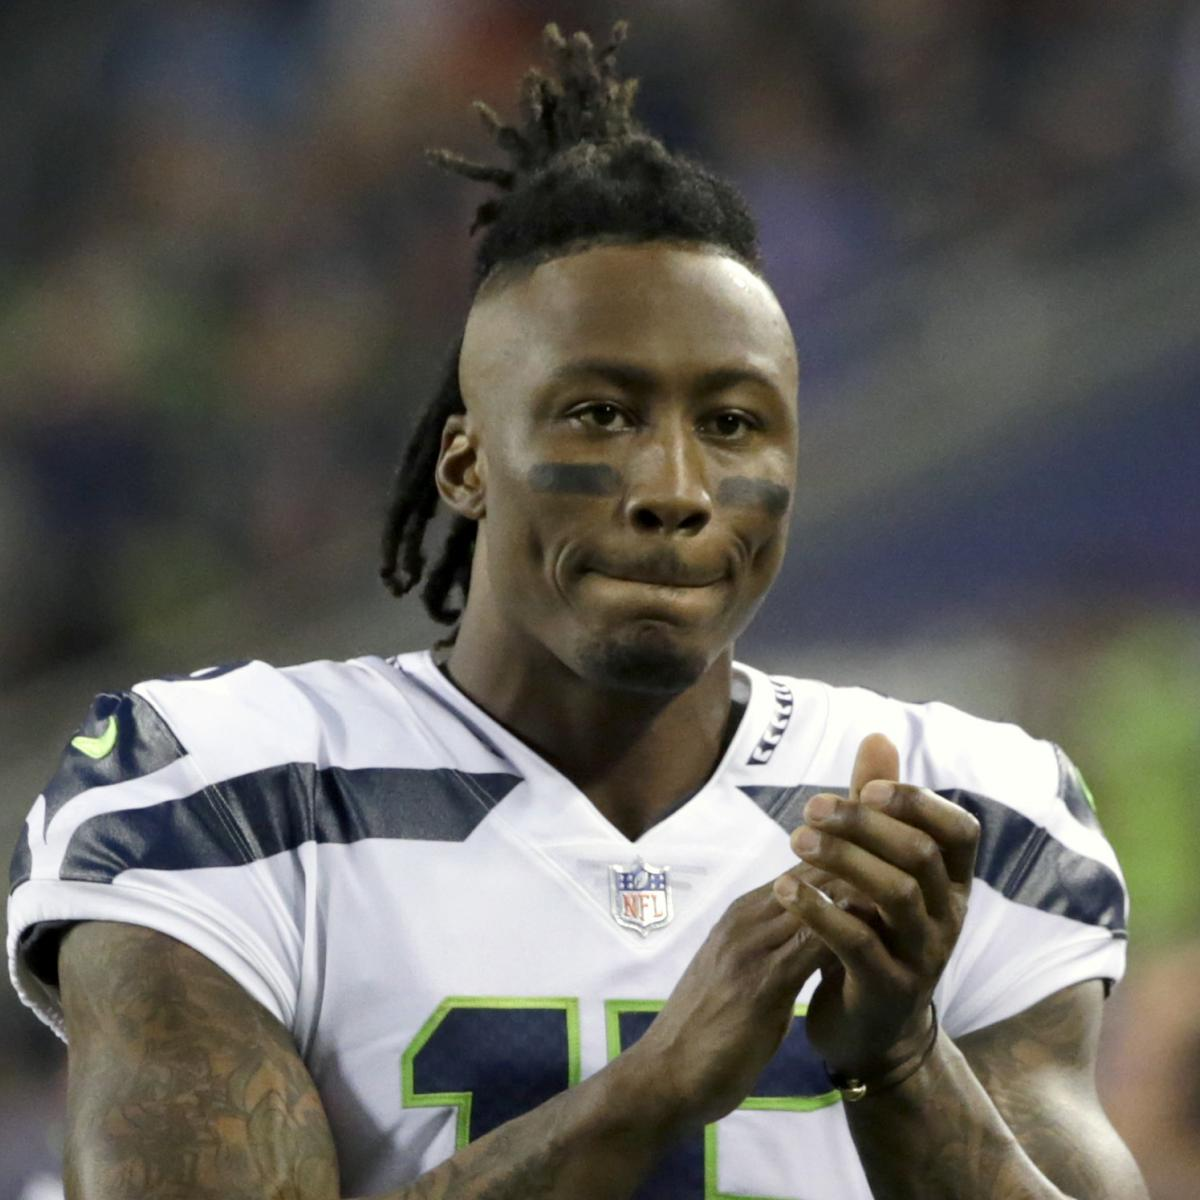 Evander Holyfield Says Former NFL WR Brandon Marshall 'Intimidating' as a Boxer